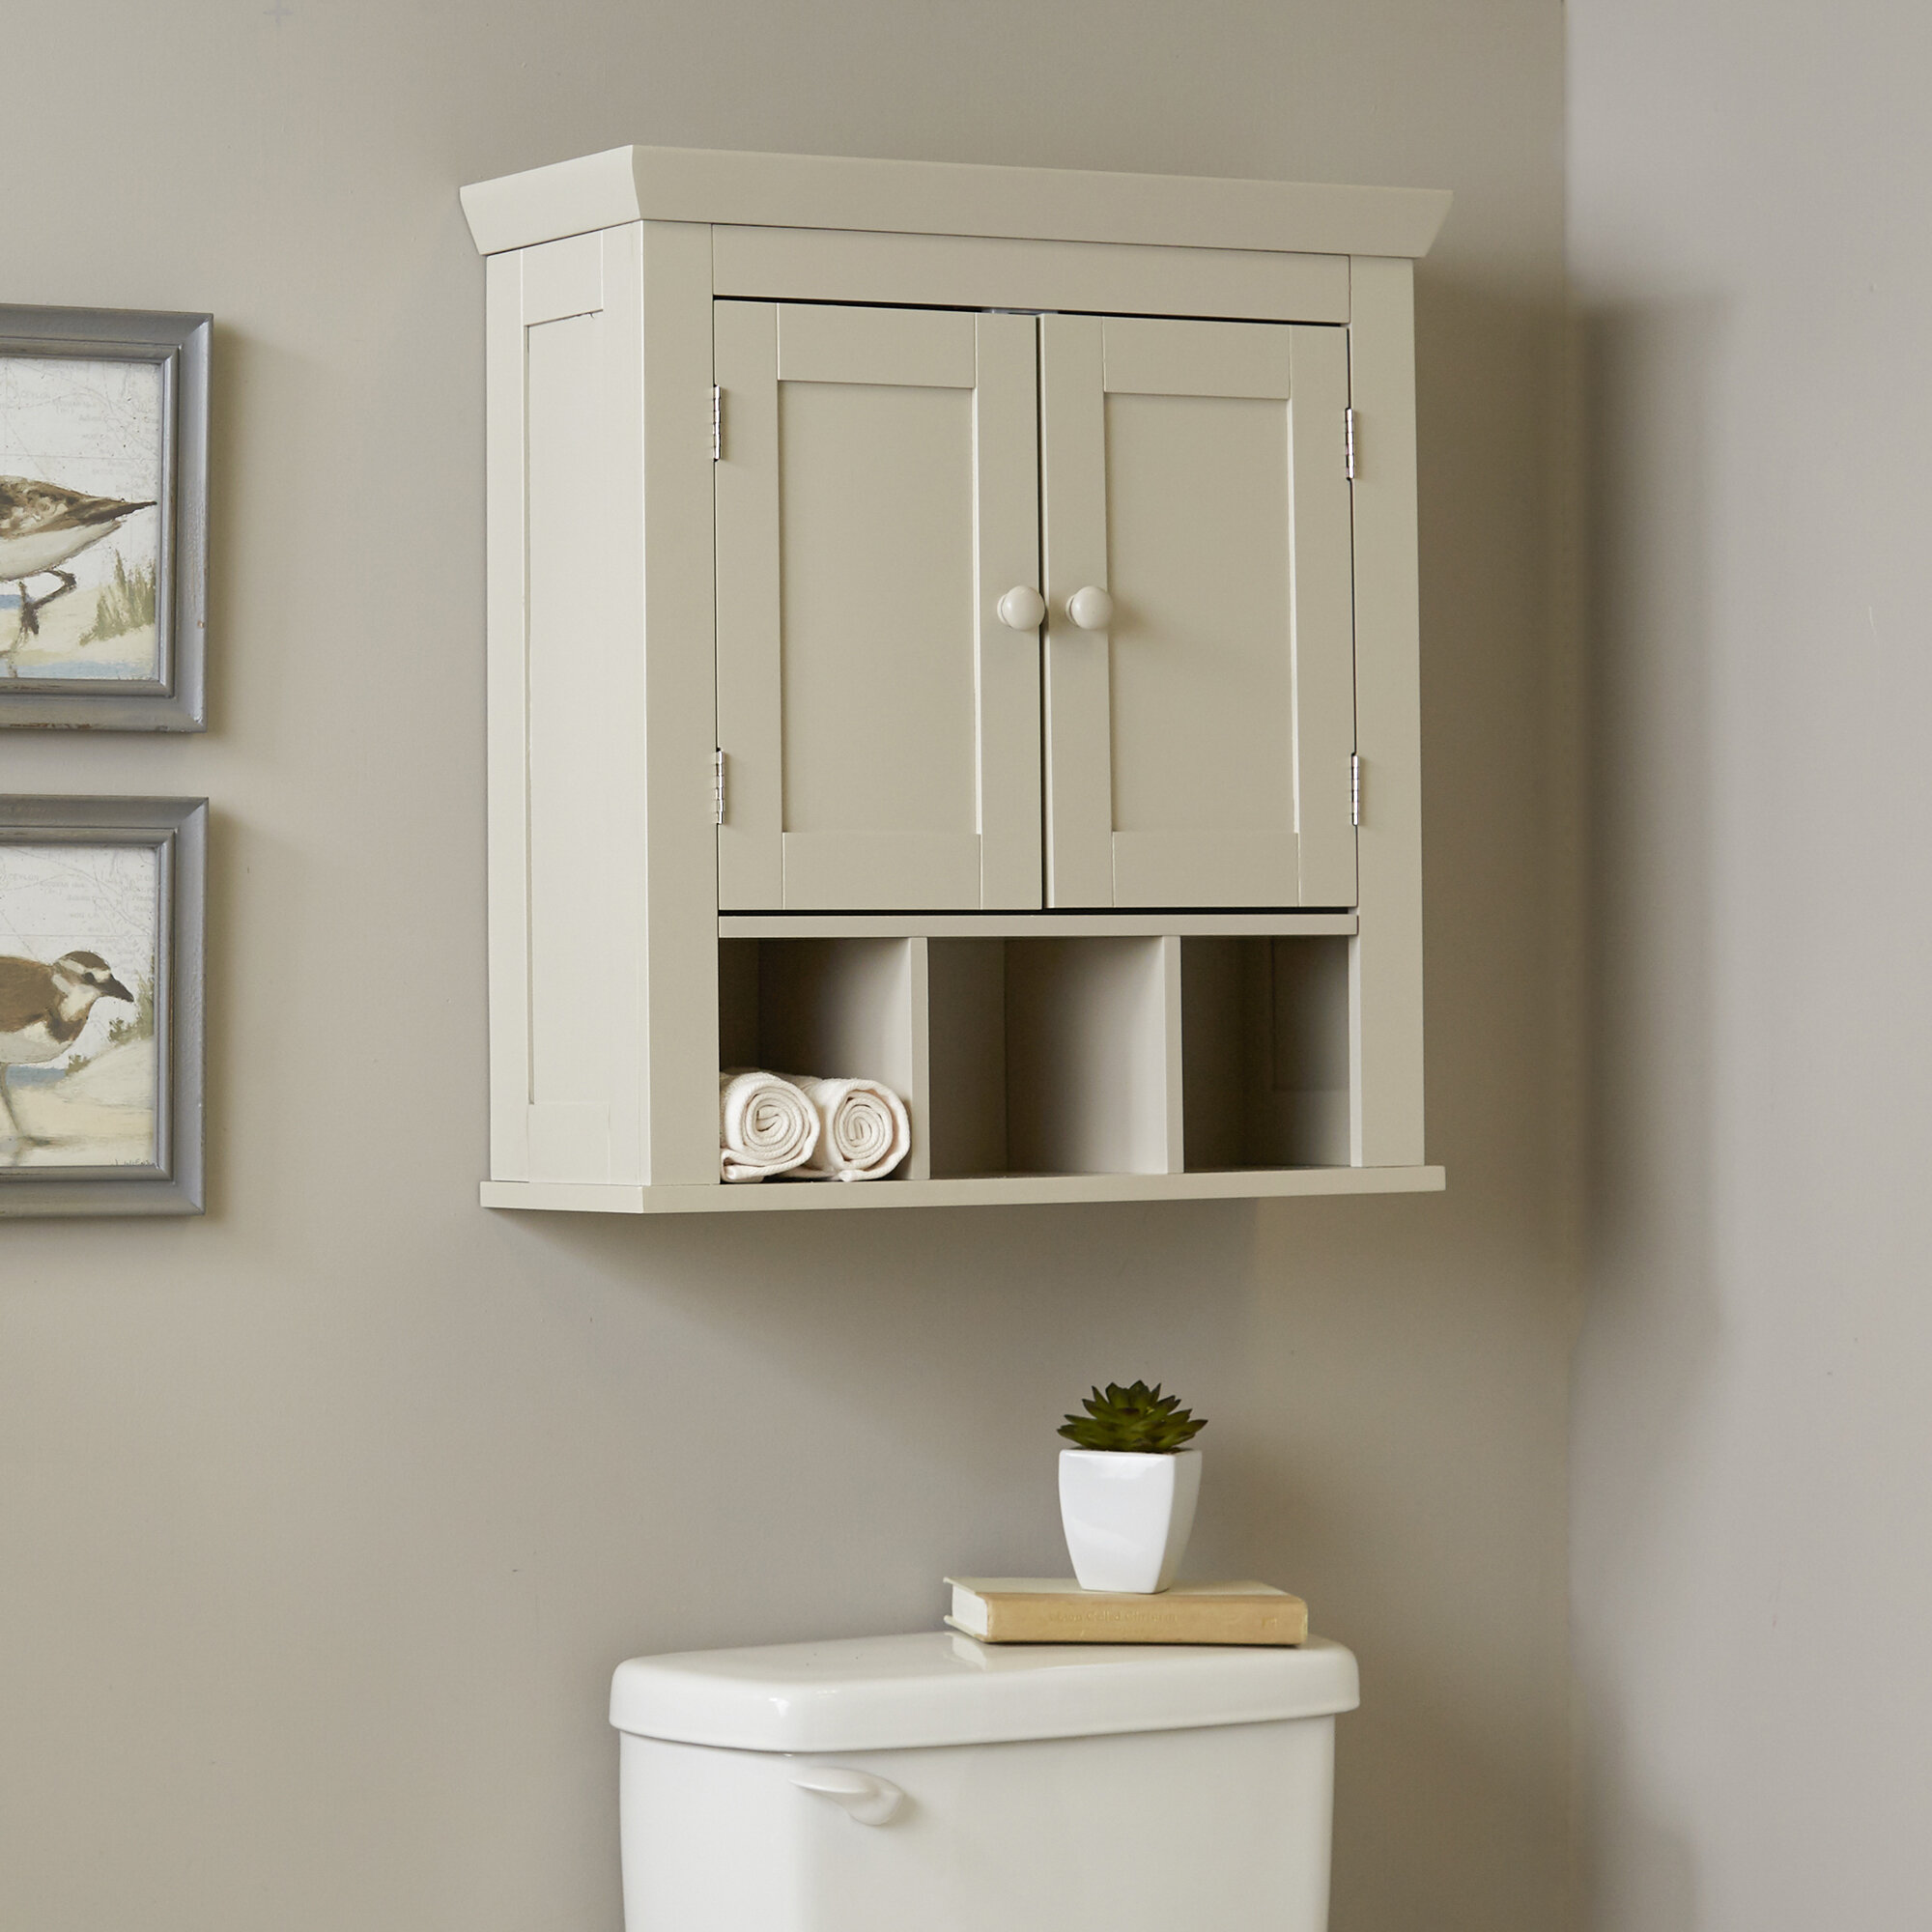 Three Posts Chorley 22 4 W X 24 H Wall Mounted Cabinet Reviews Wayfair